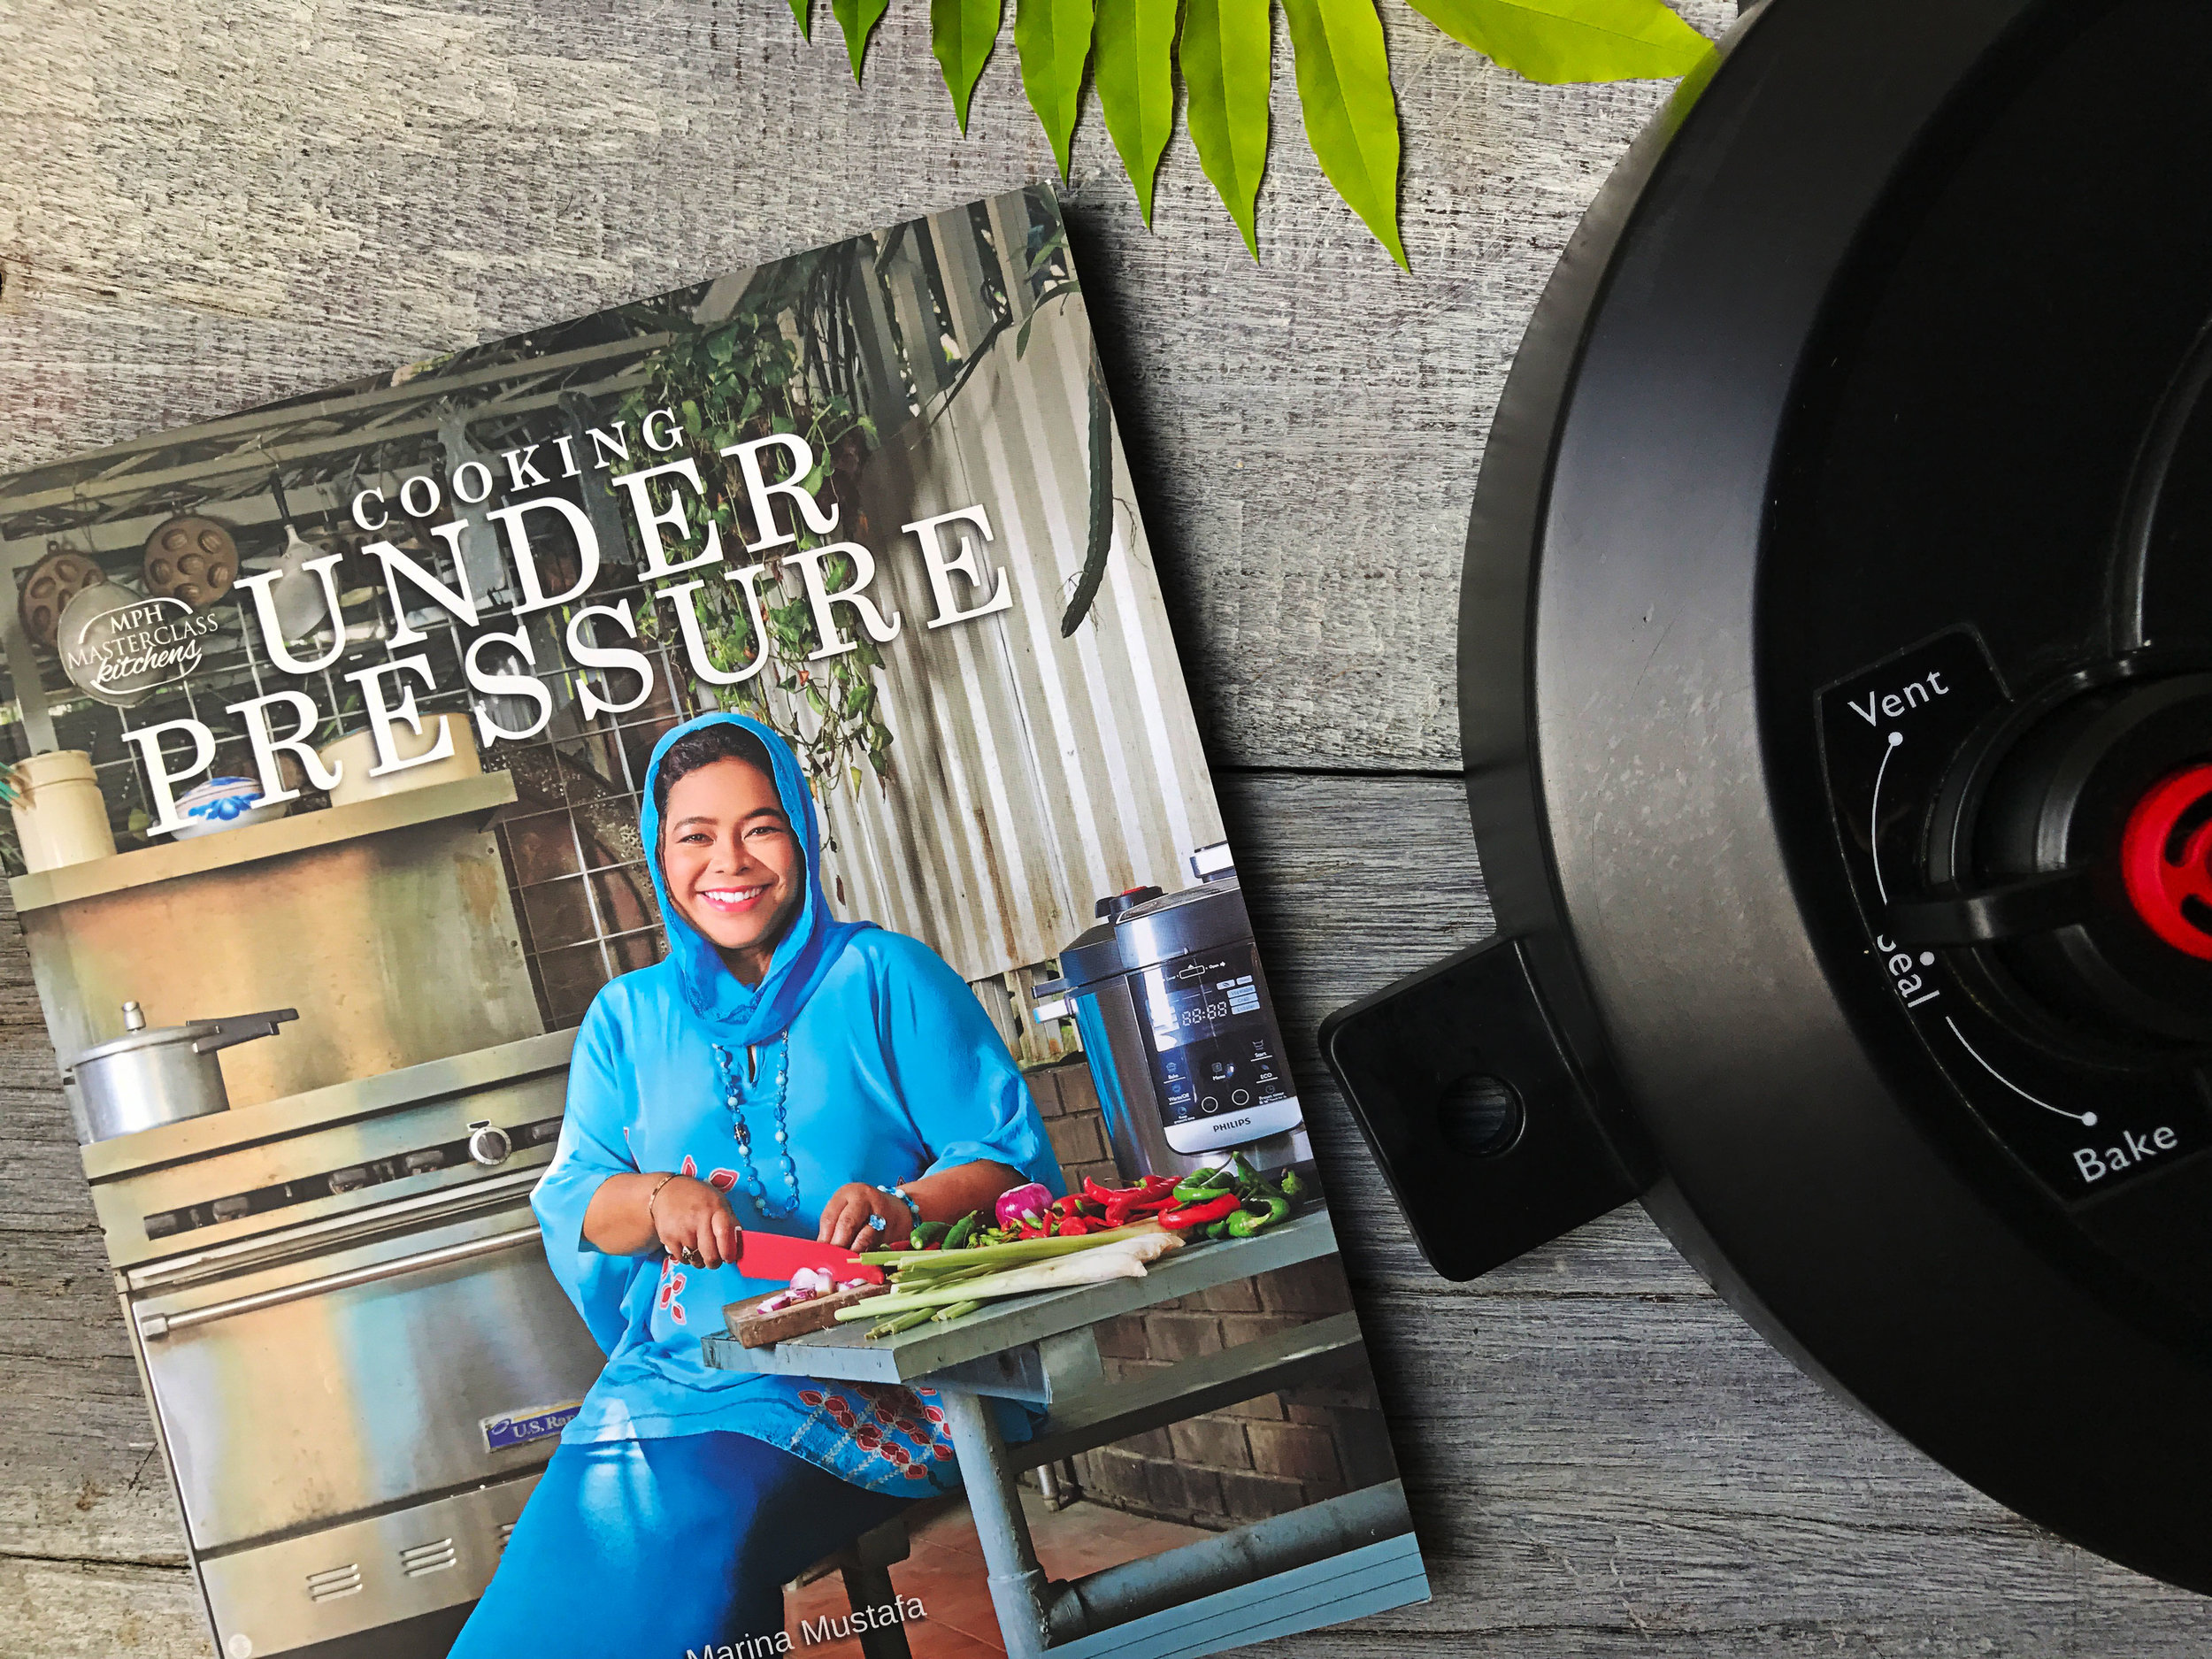 Cooking Under Pressure - This cookbook is a collaboration with Philips Malaysia, primarily of Malaysian dishes, focused on cooking with an electric pressure cooker. Nasi Lemak in 15 minutes, Salted Fish & Pineapple Gulai in 20 mins, Mee Rebus Tulang in 30 minutes! There will no pressure when cooking under pressure!